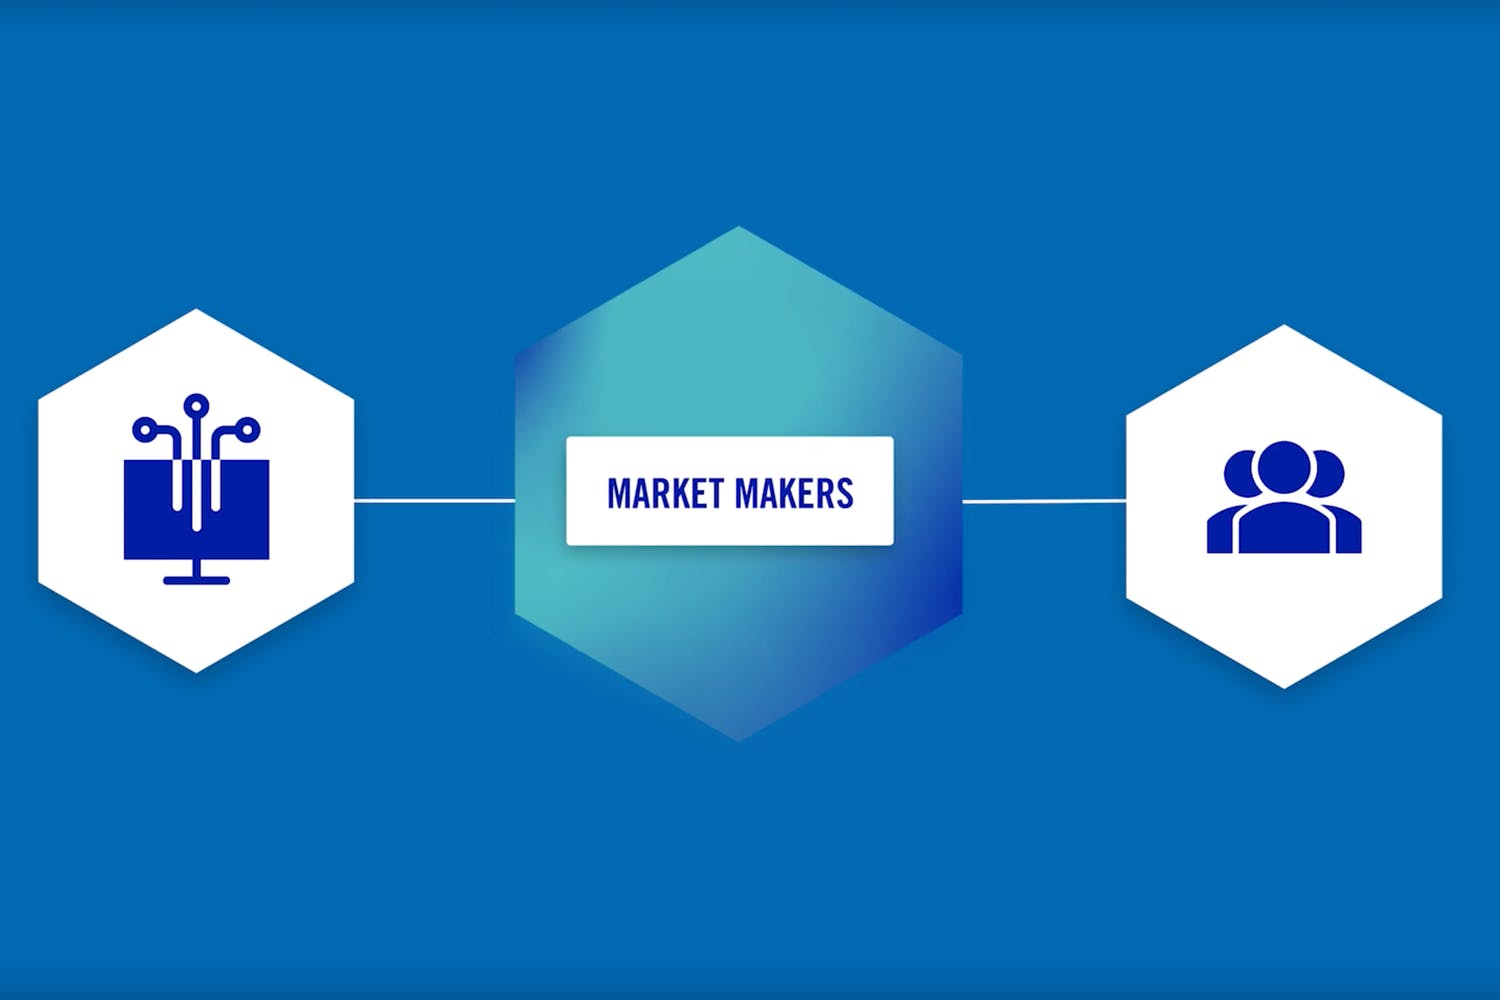 What is a market maker?